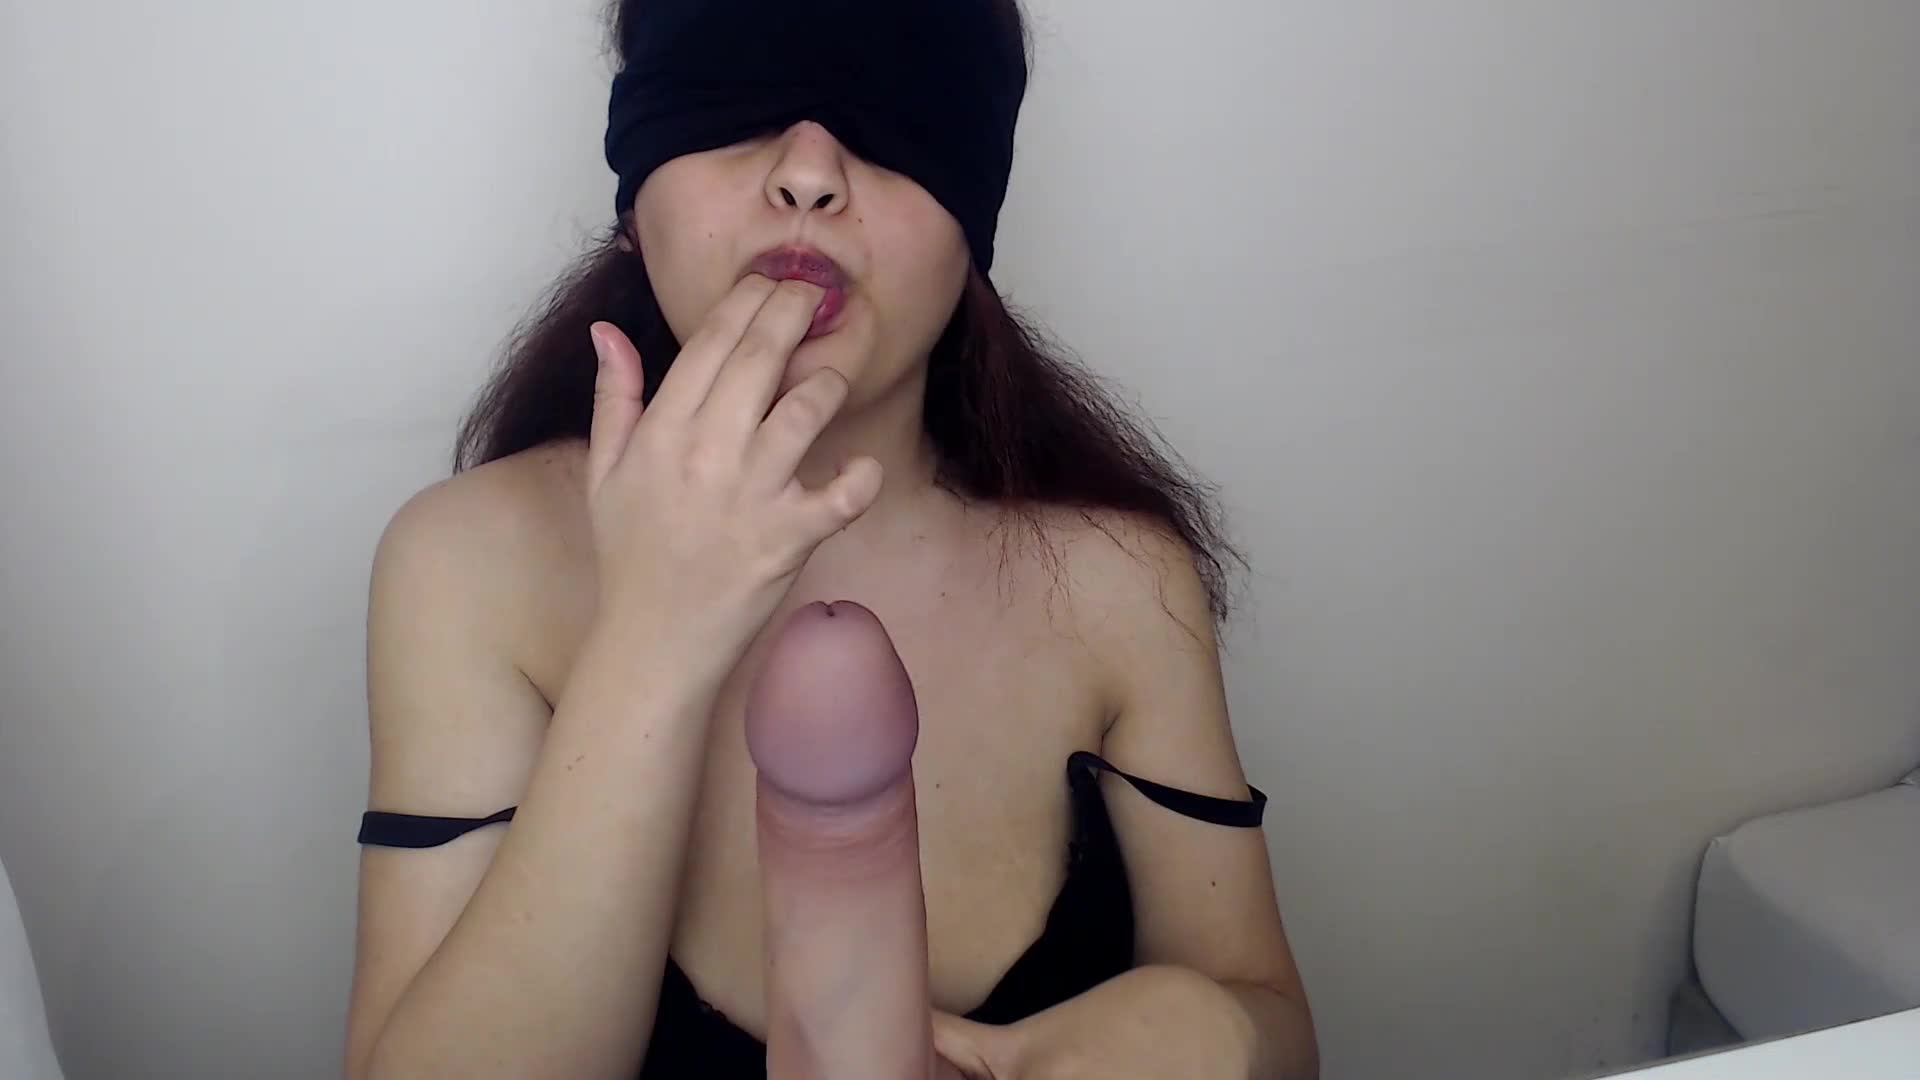 SLOPPY BLOWJOB FROM BLINDFOLDED INDIAN COLLEGE STUDENT-56260013